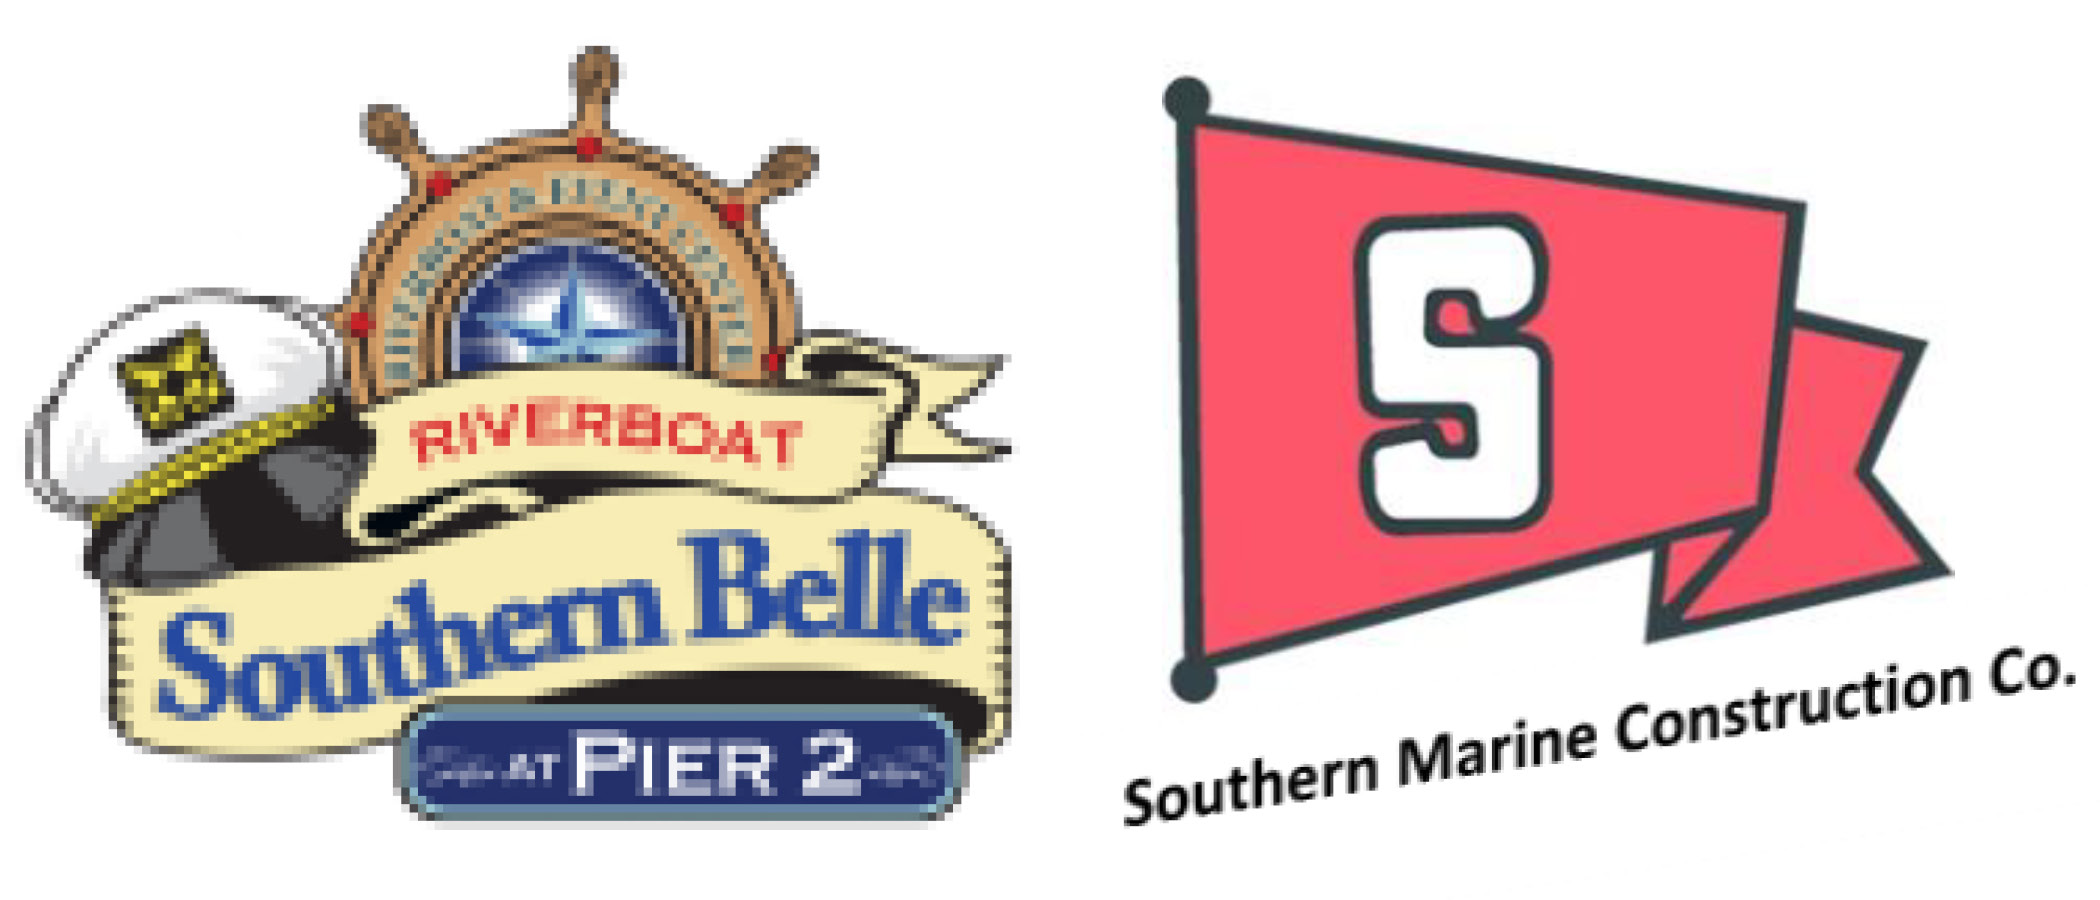 Southern Belle Riverboat, Chattanooga TN & Southern Marine Construction Co. present Free Riverboat Cruises for Students - Grades 3 through 8